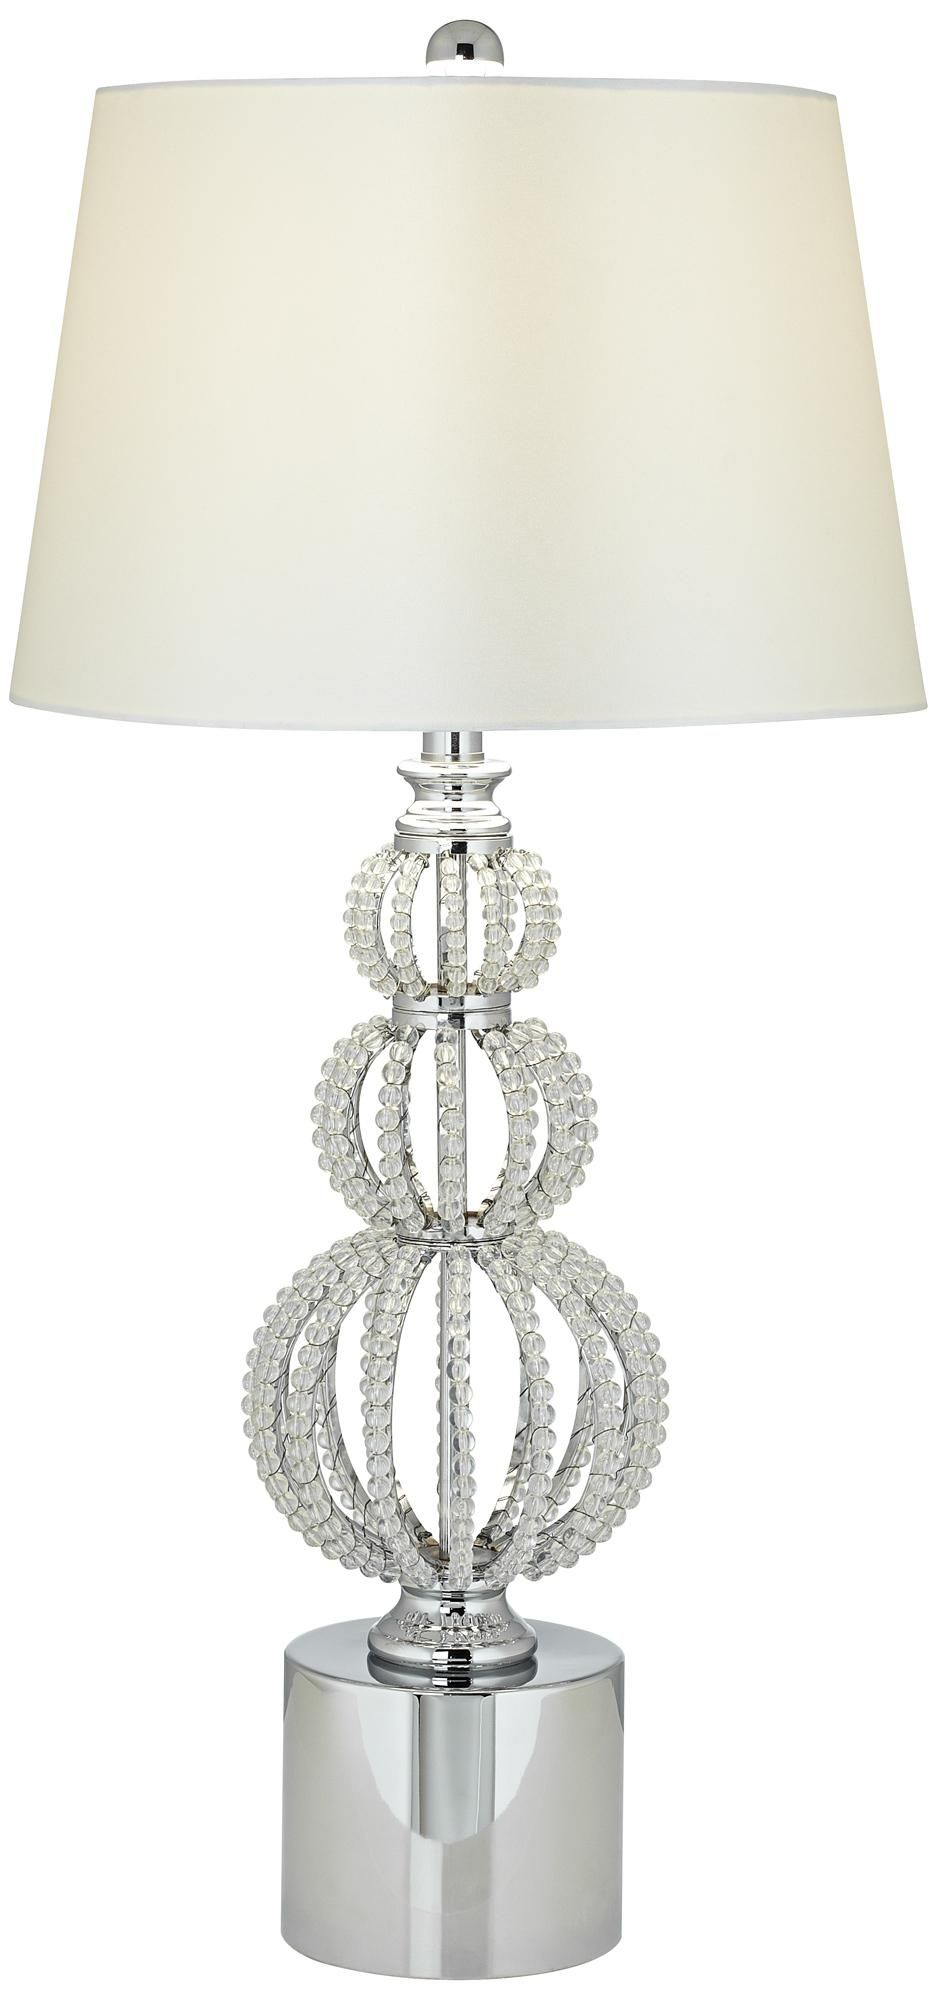 Beaded Stacked Spheres Crystal Table Lamp Crystal Table Lamps